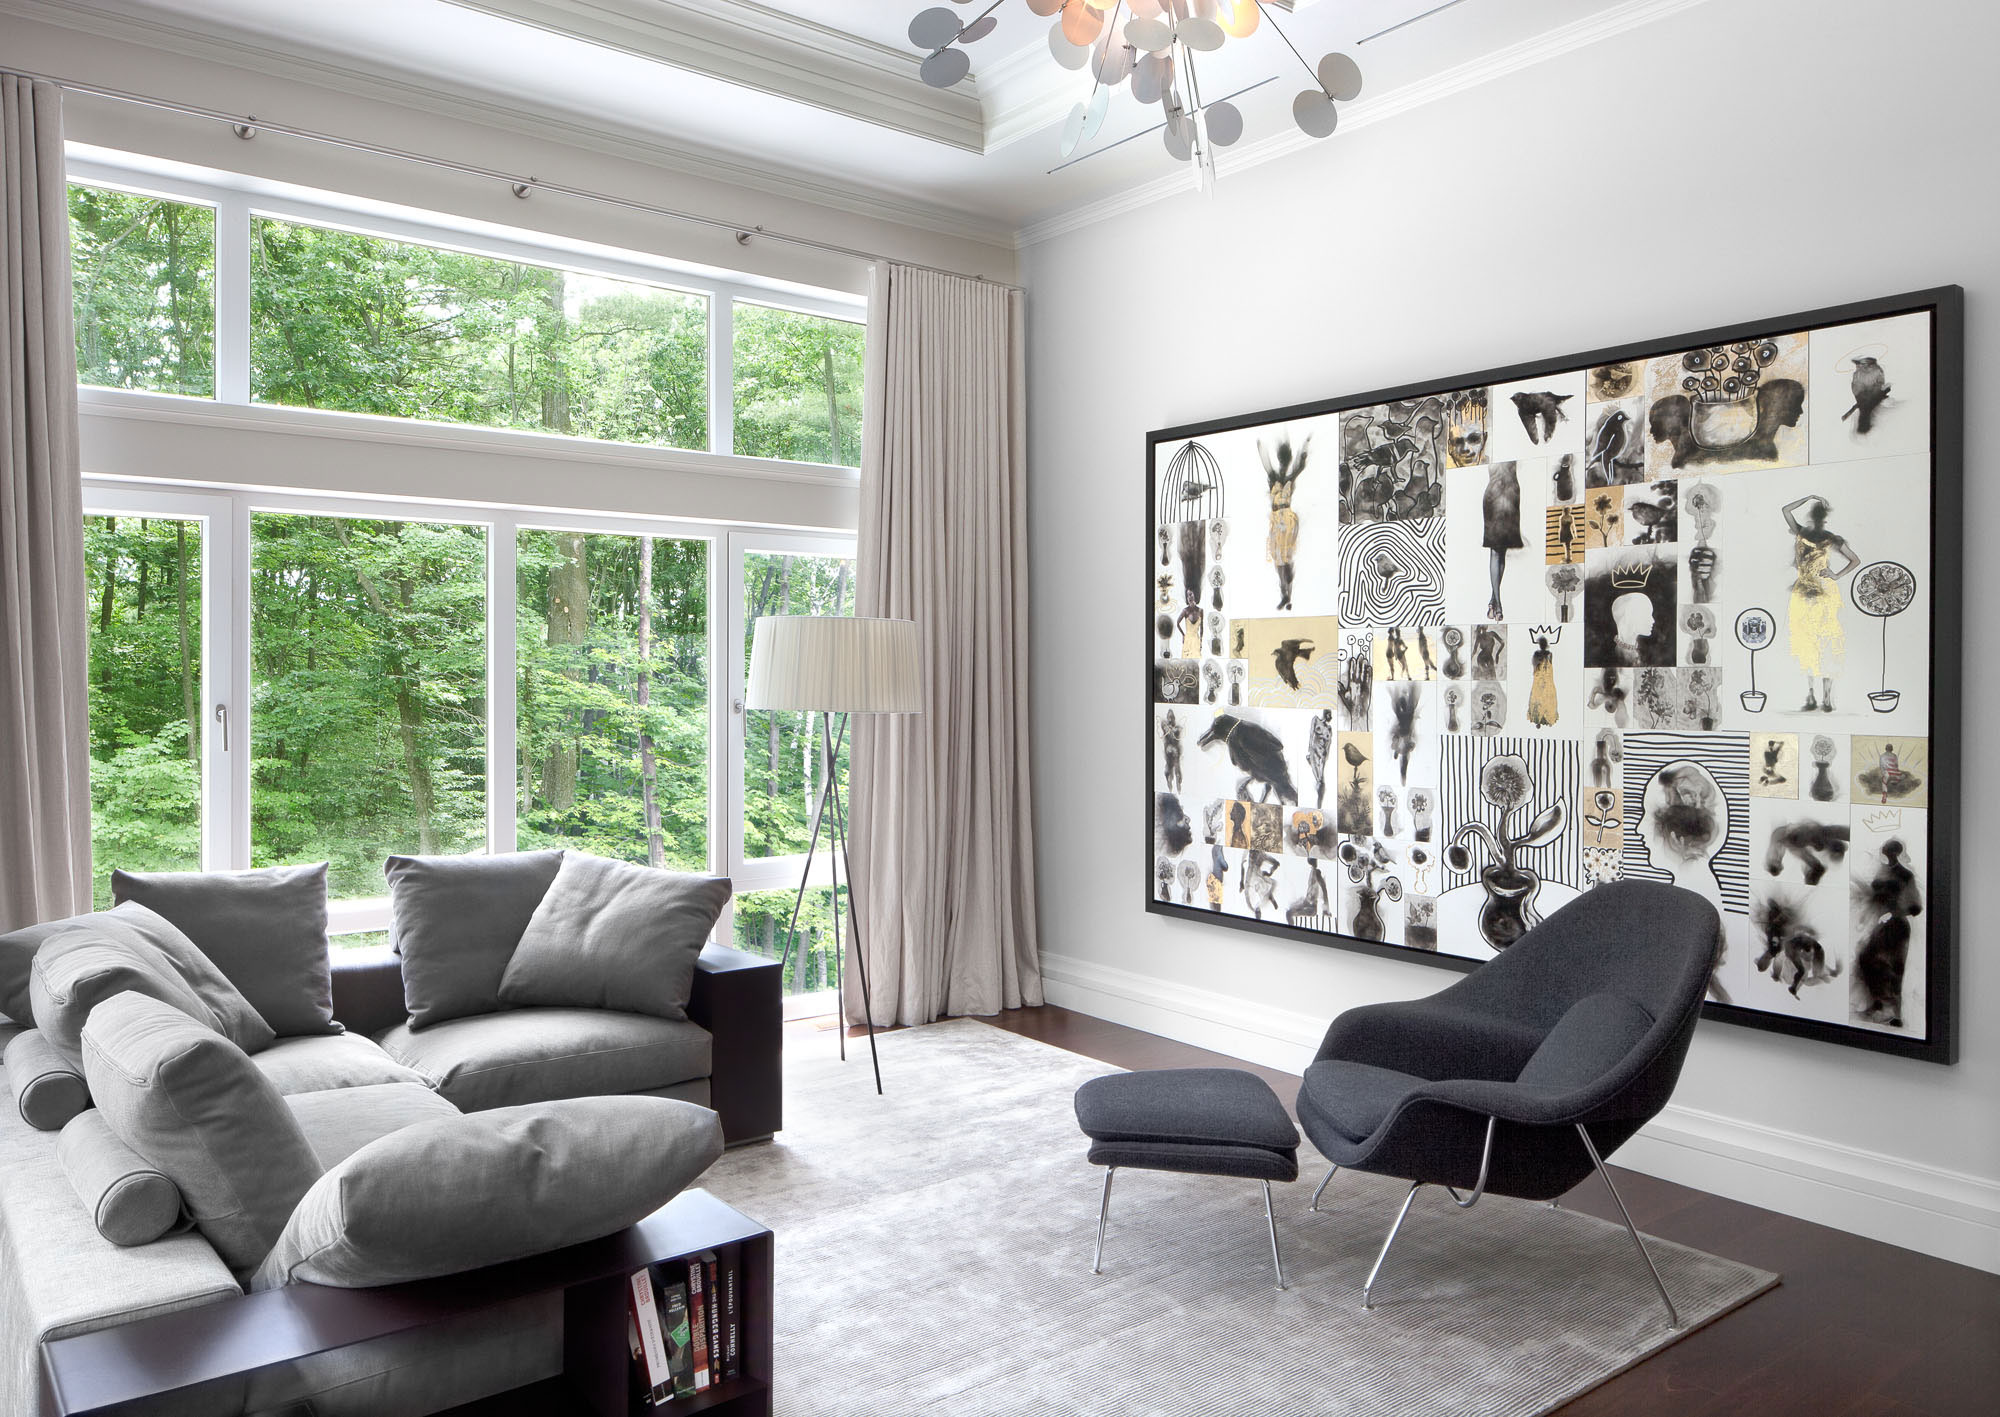 25 Black and White Glamour Decor Inspirations 4